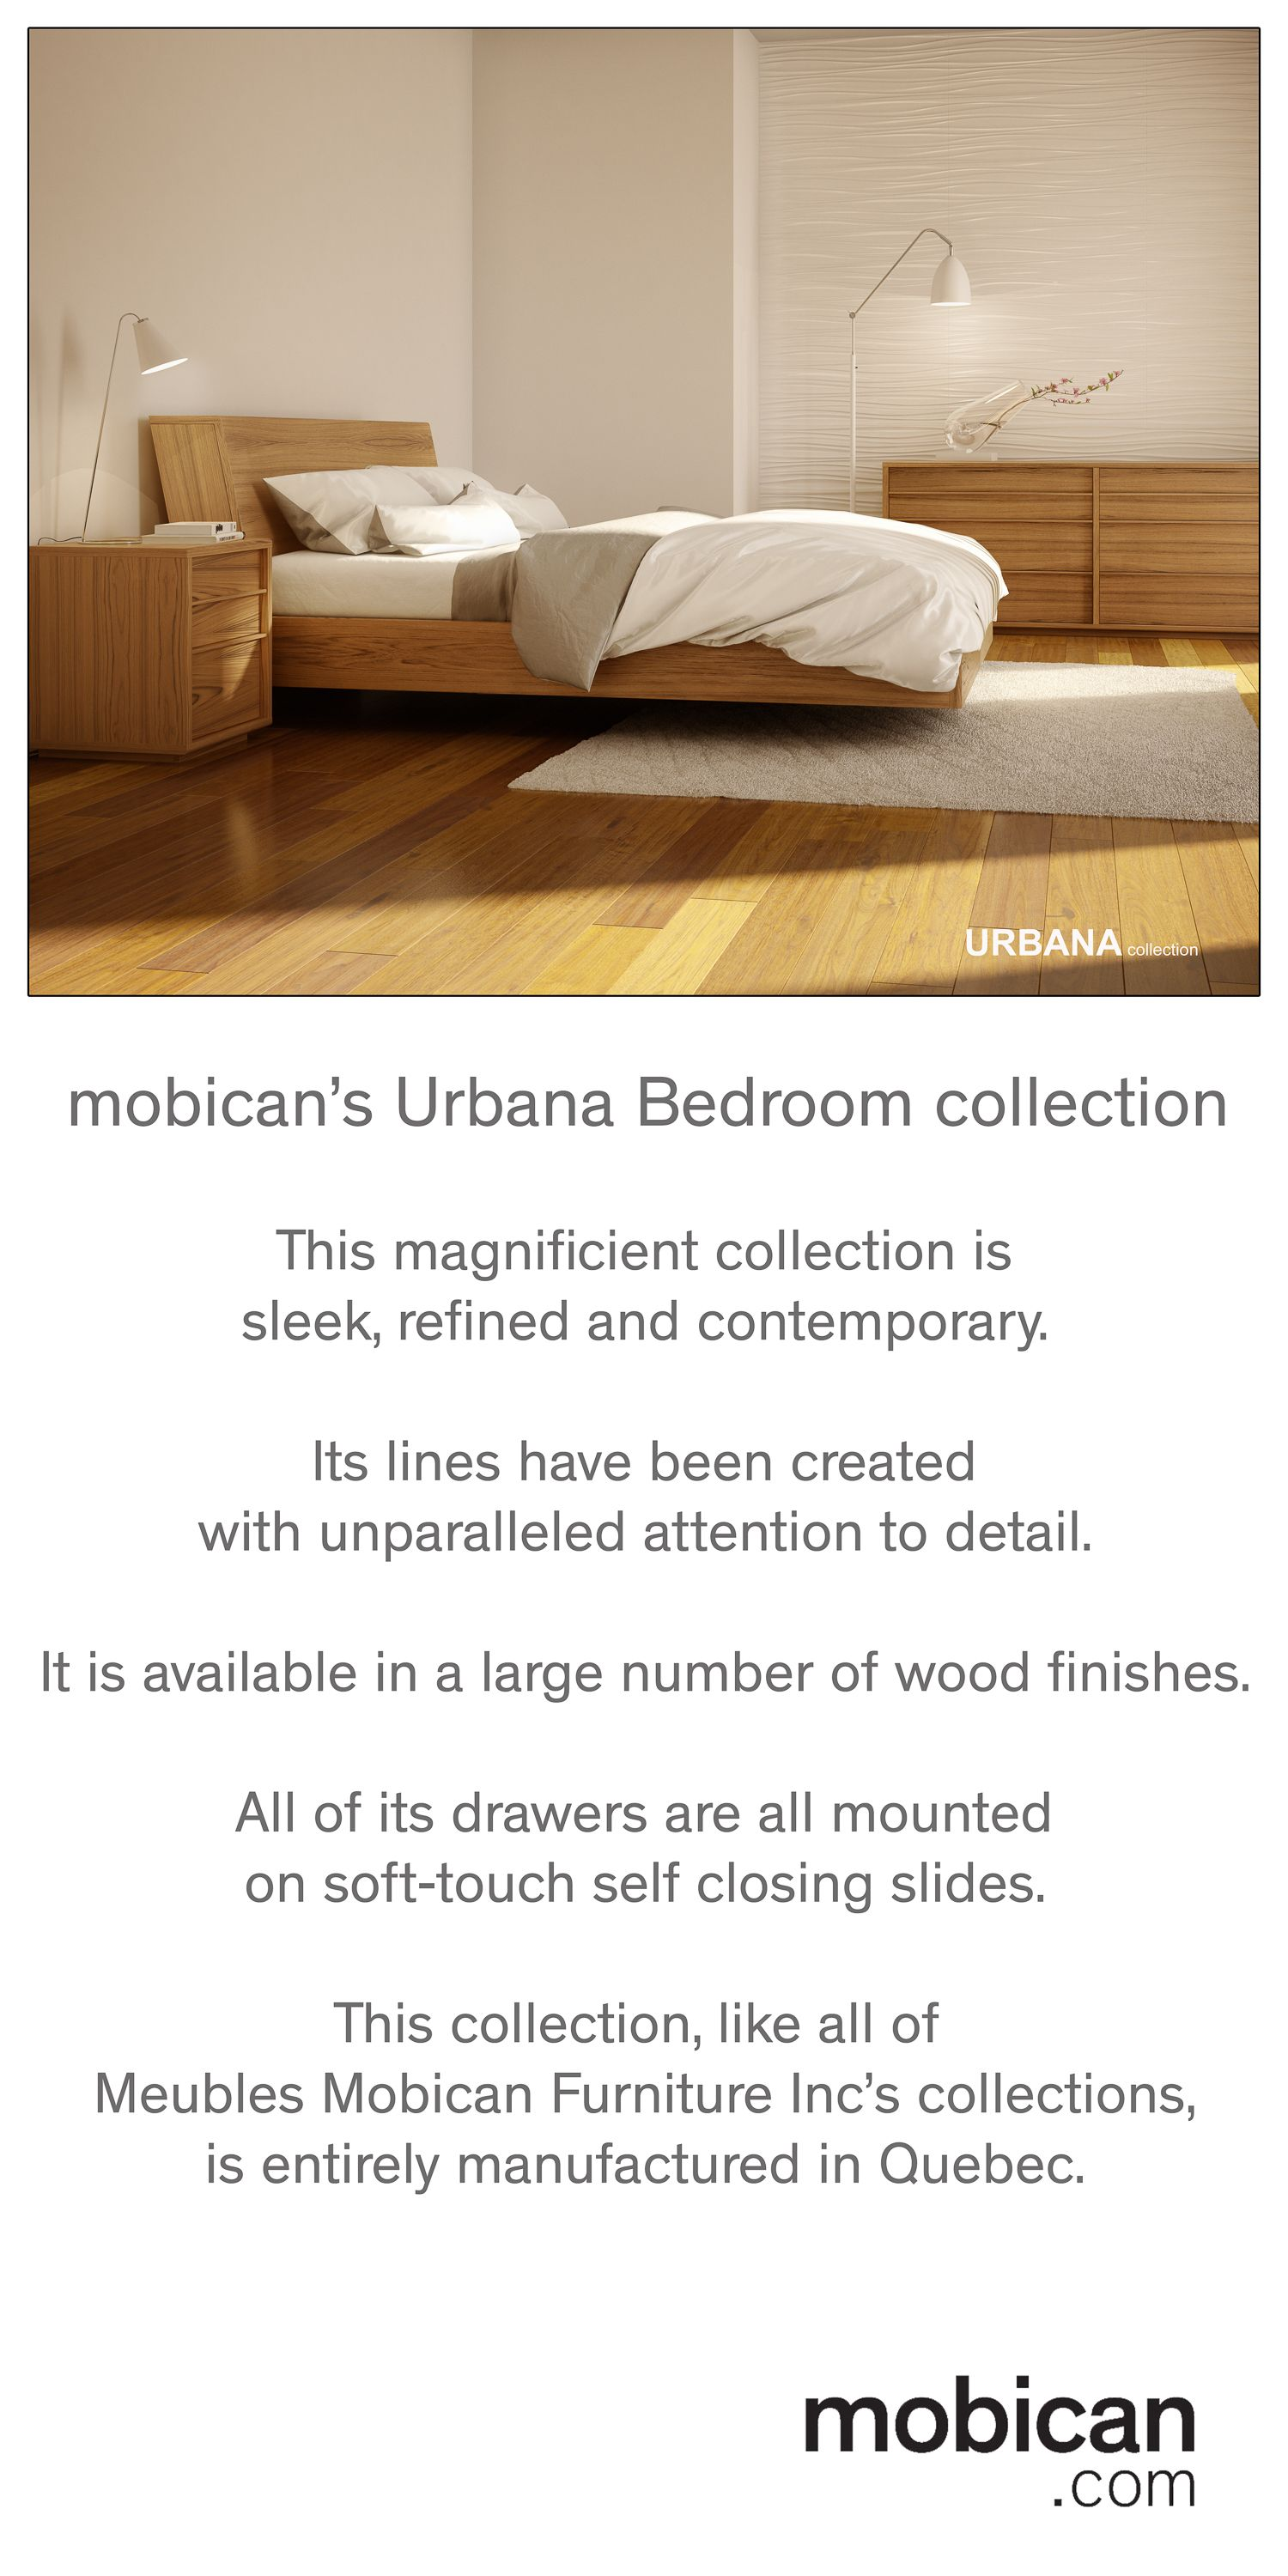 Meubles Mobican Furniture This Gorgeous Bedroom Collection From Meubles Mobican Furniture